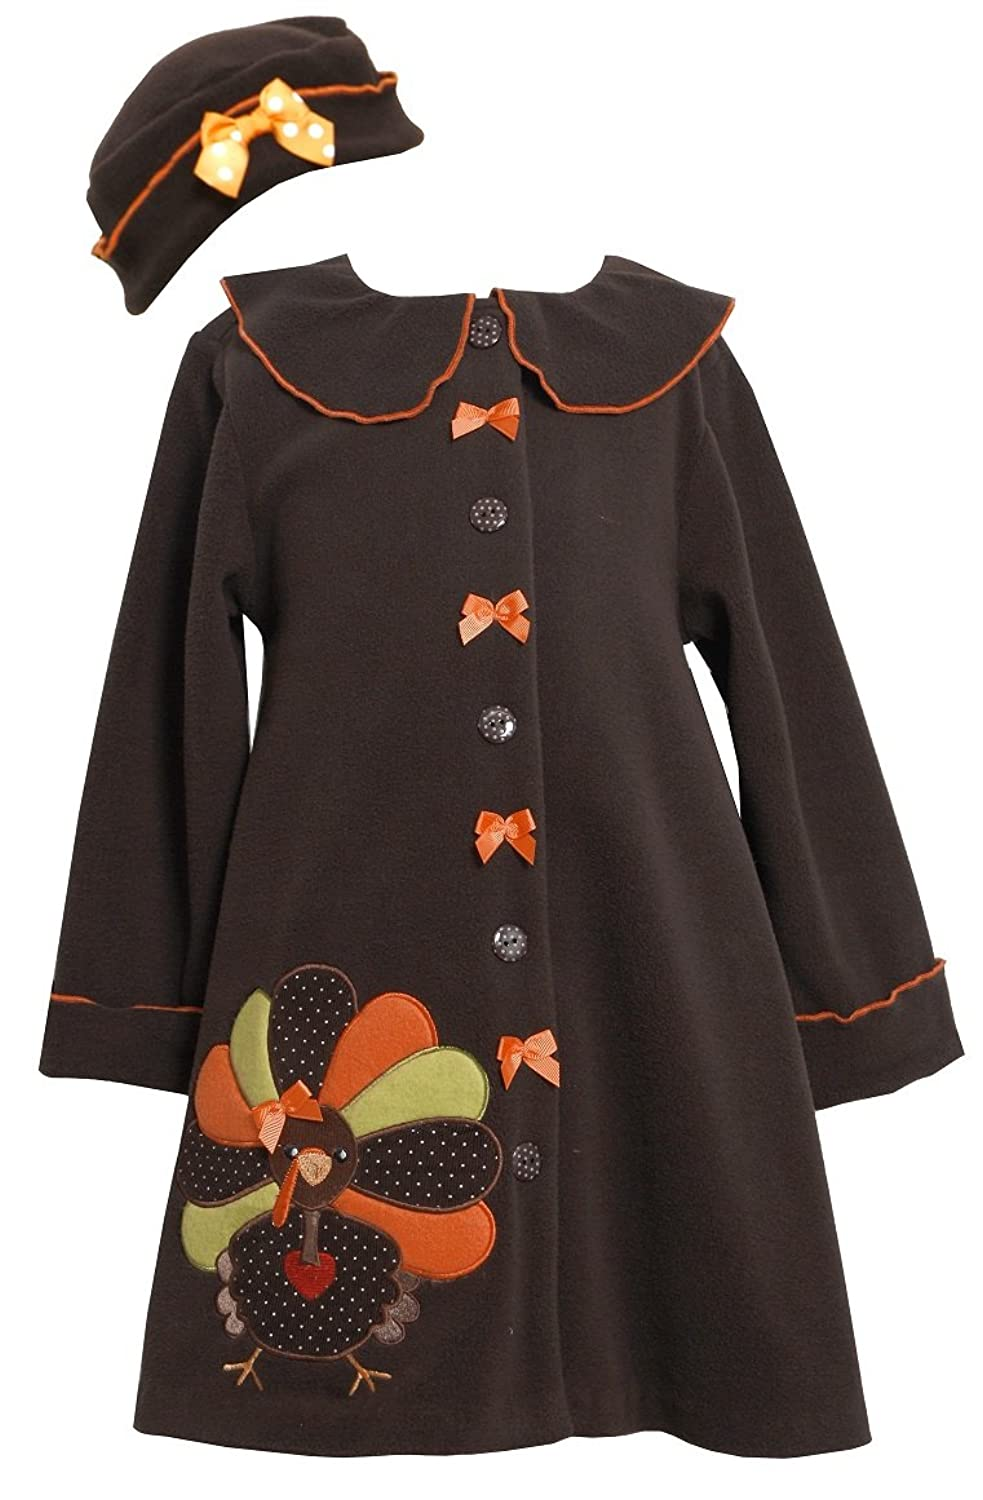 Amazon.com: Bonnie Jean Girls Bonaz Fleece Fall Winter Coat & Hat